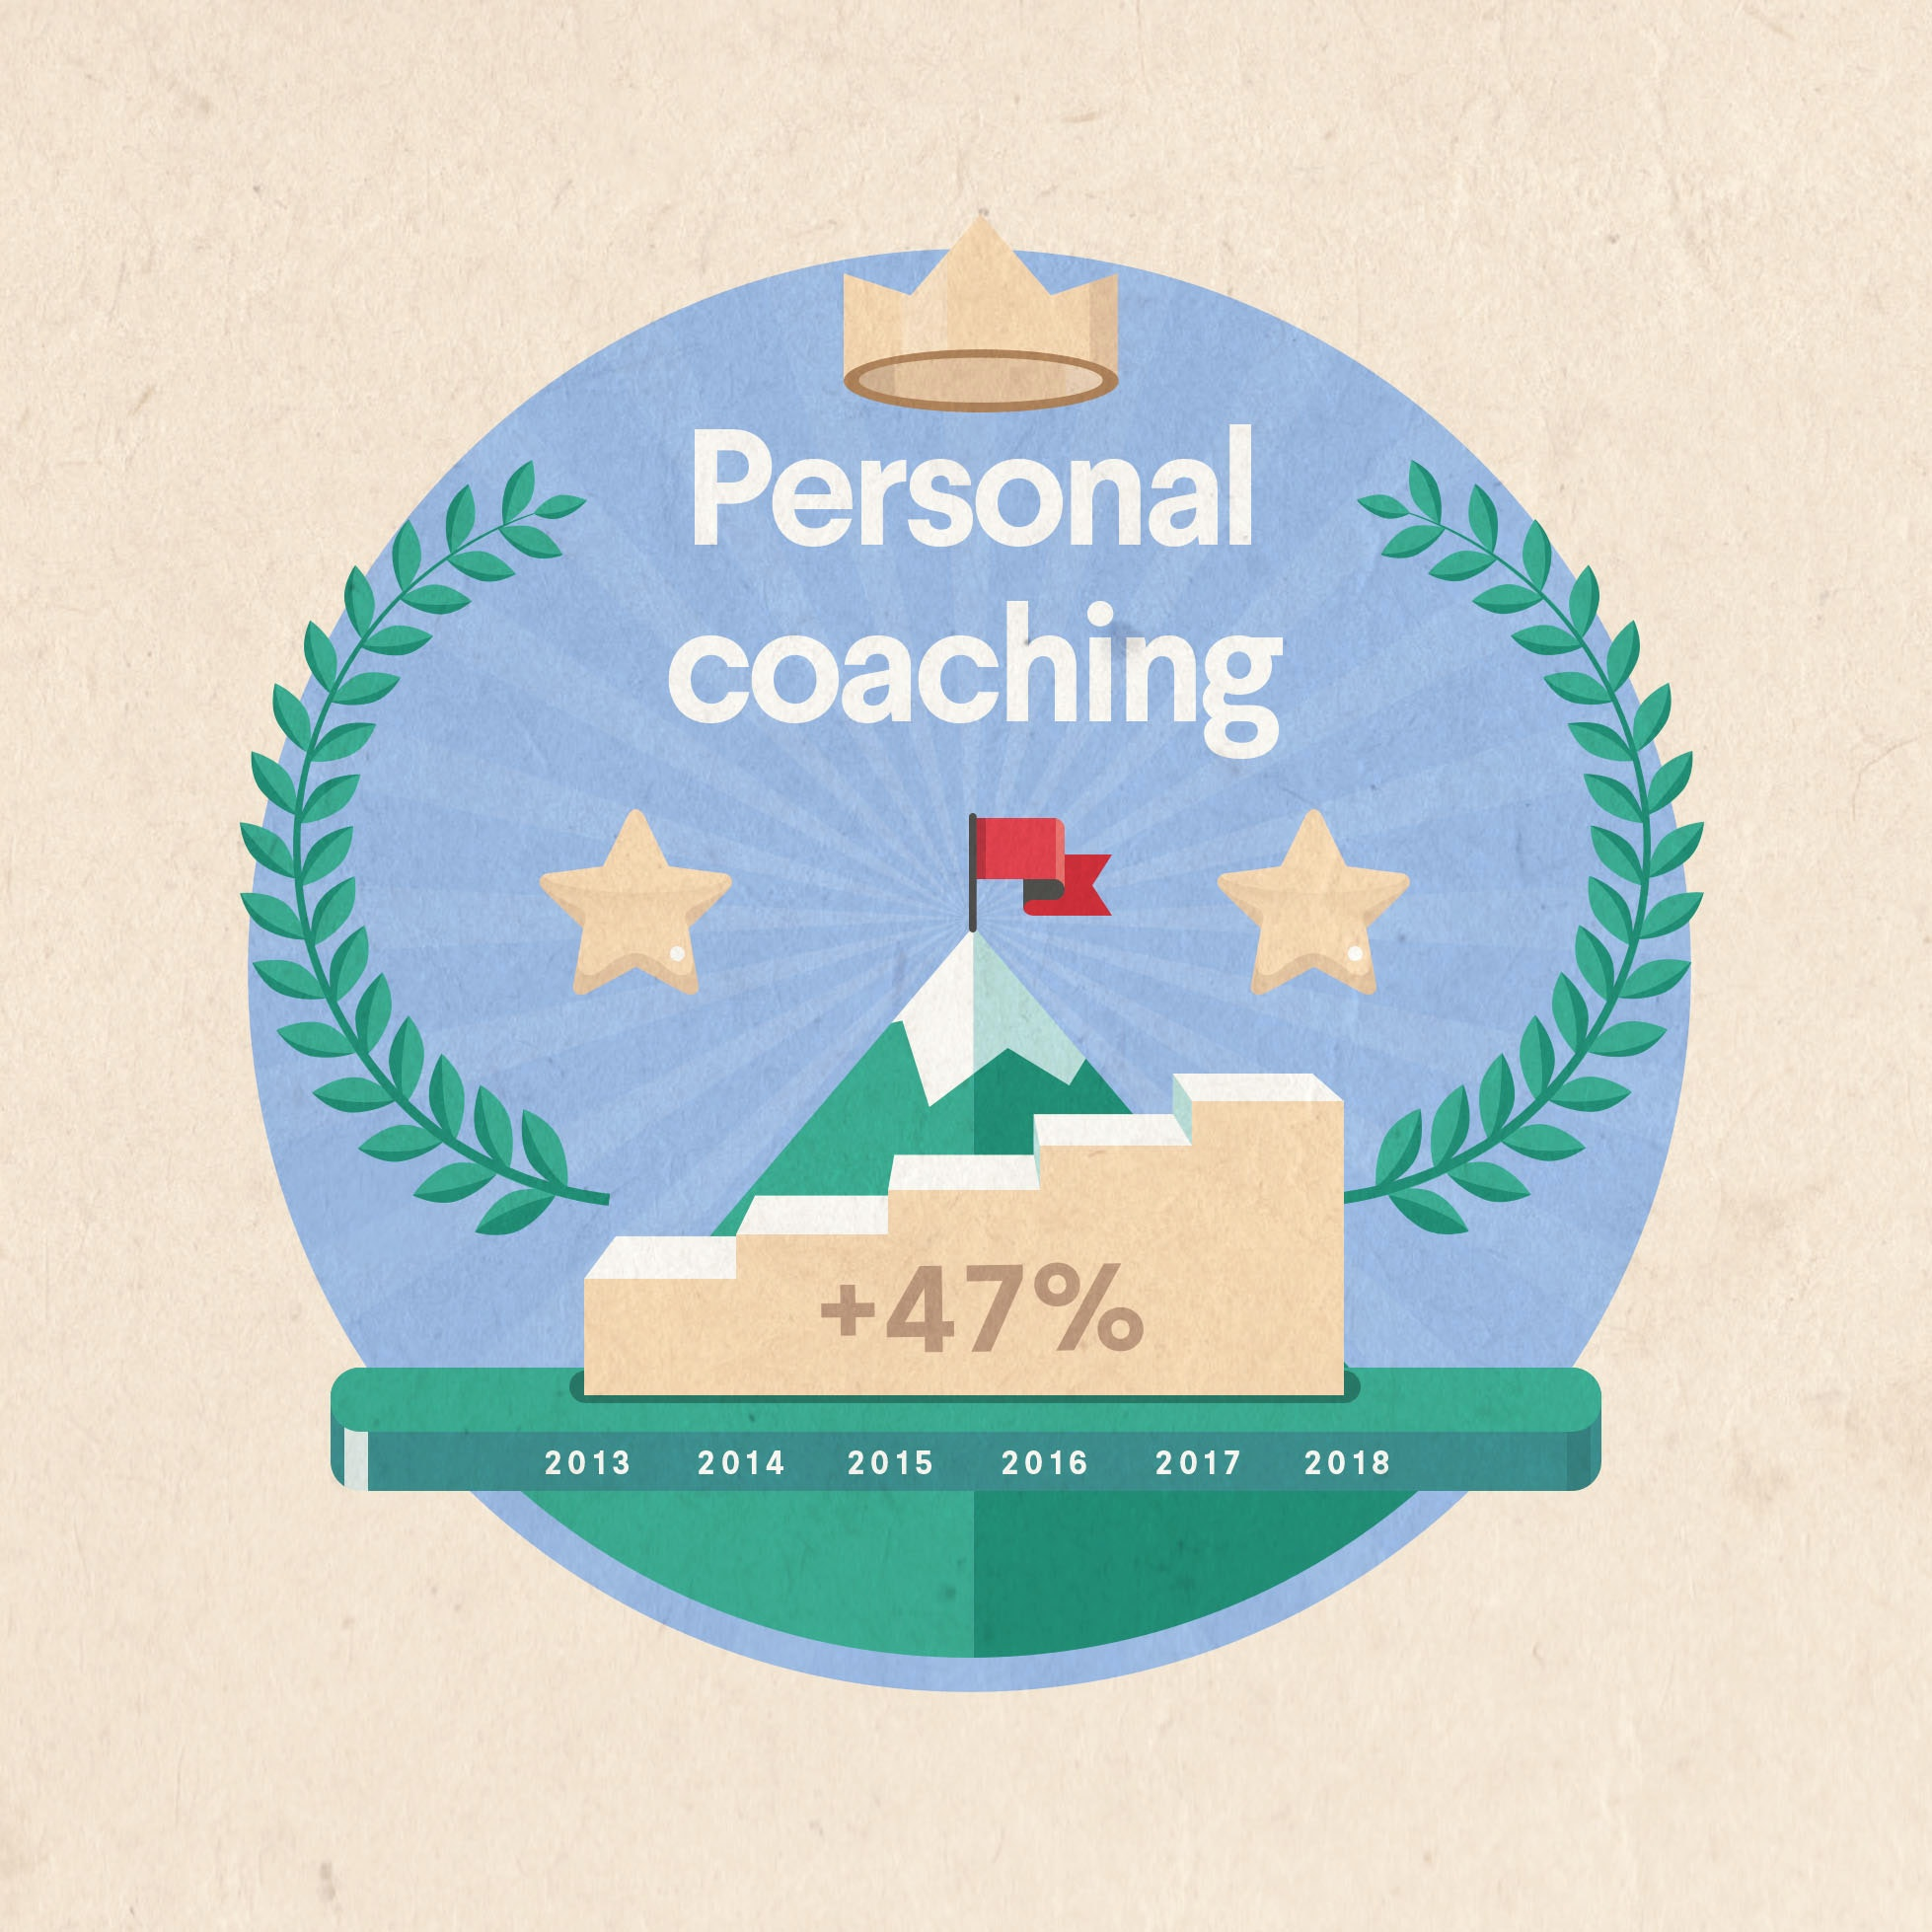 personal coaching industry growth from 2013 to 2018